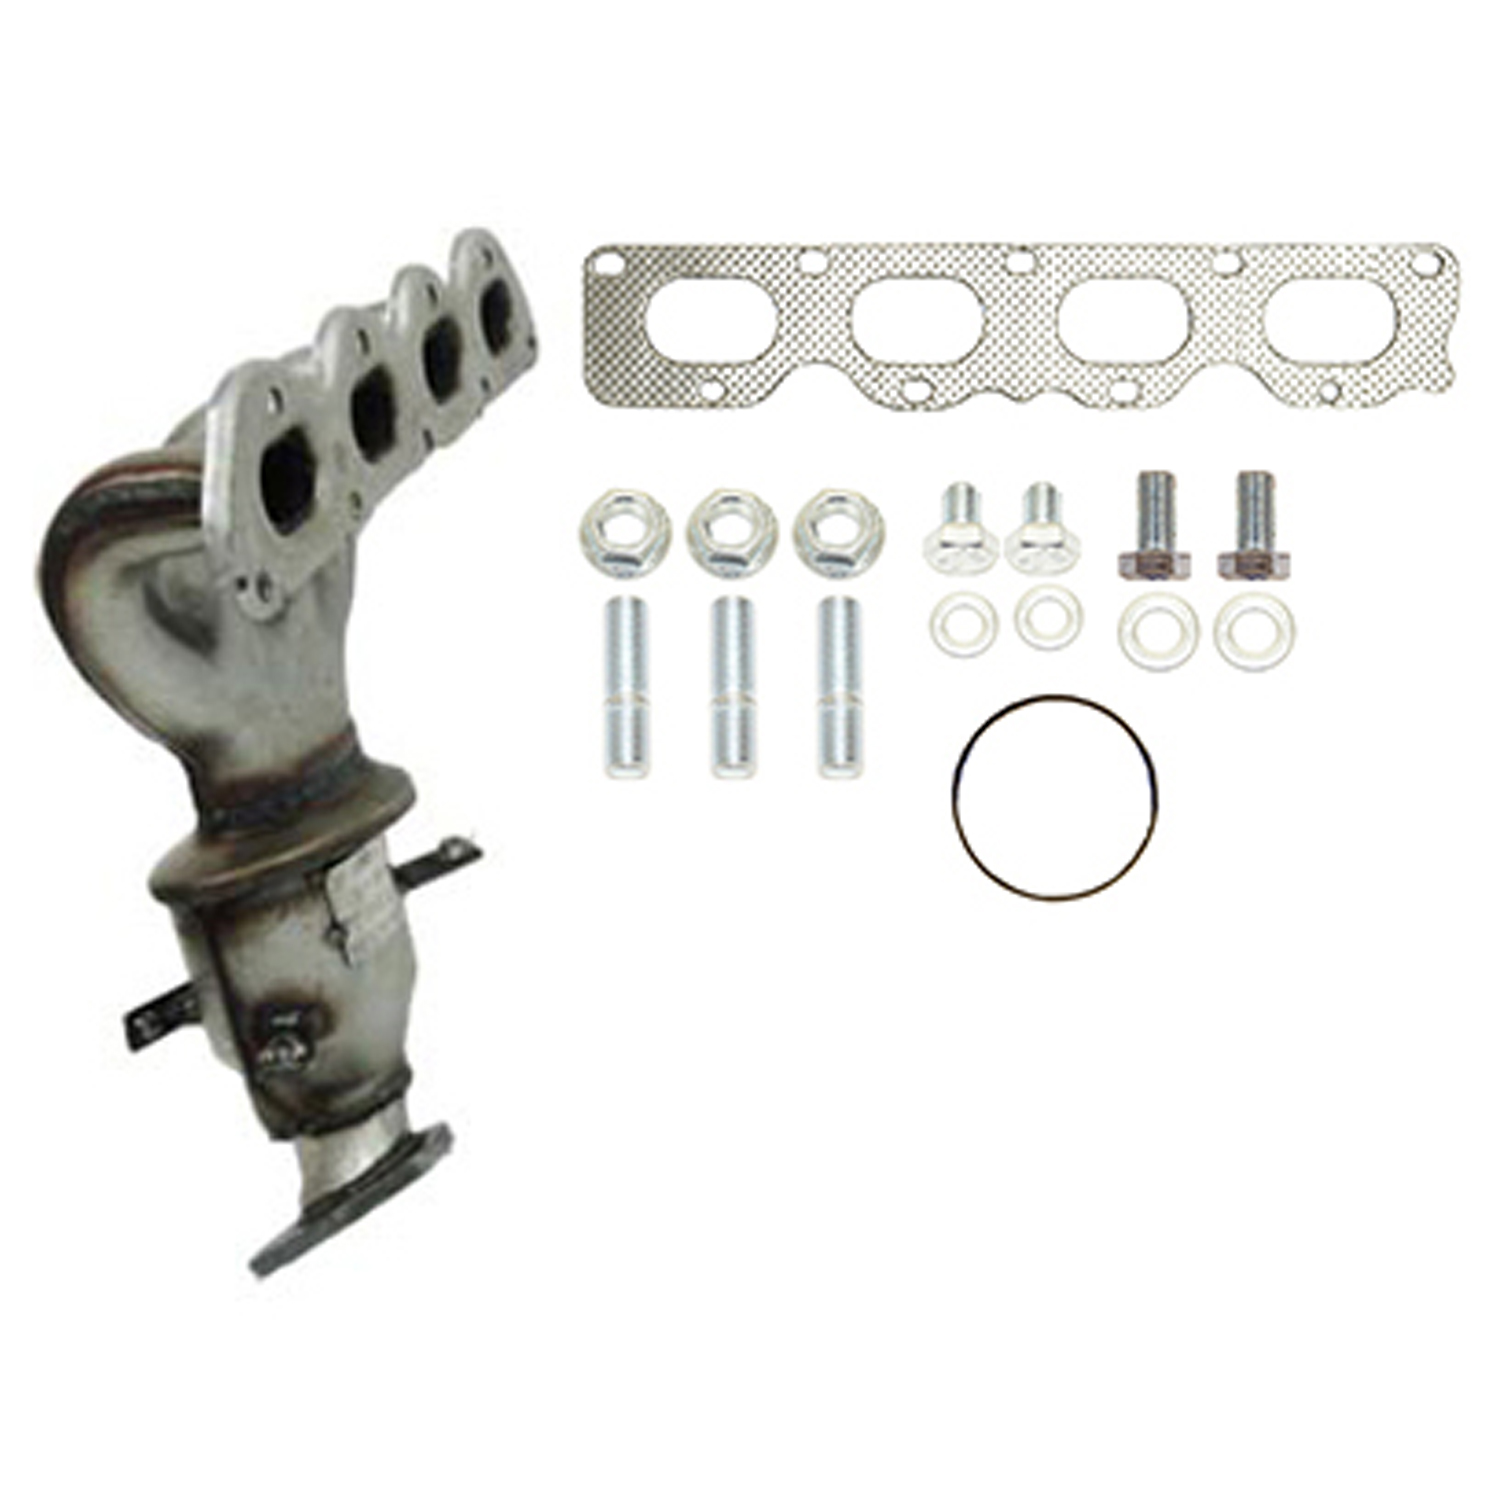 2009 Pontiac G3 Exhaust Manifold with Integrated Catalytic